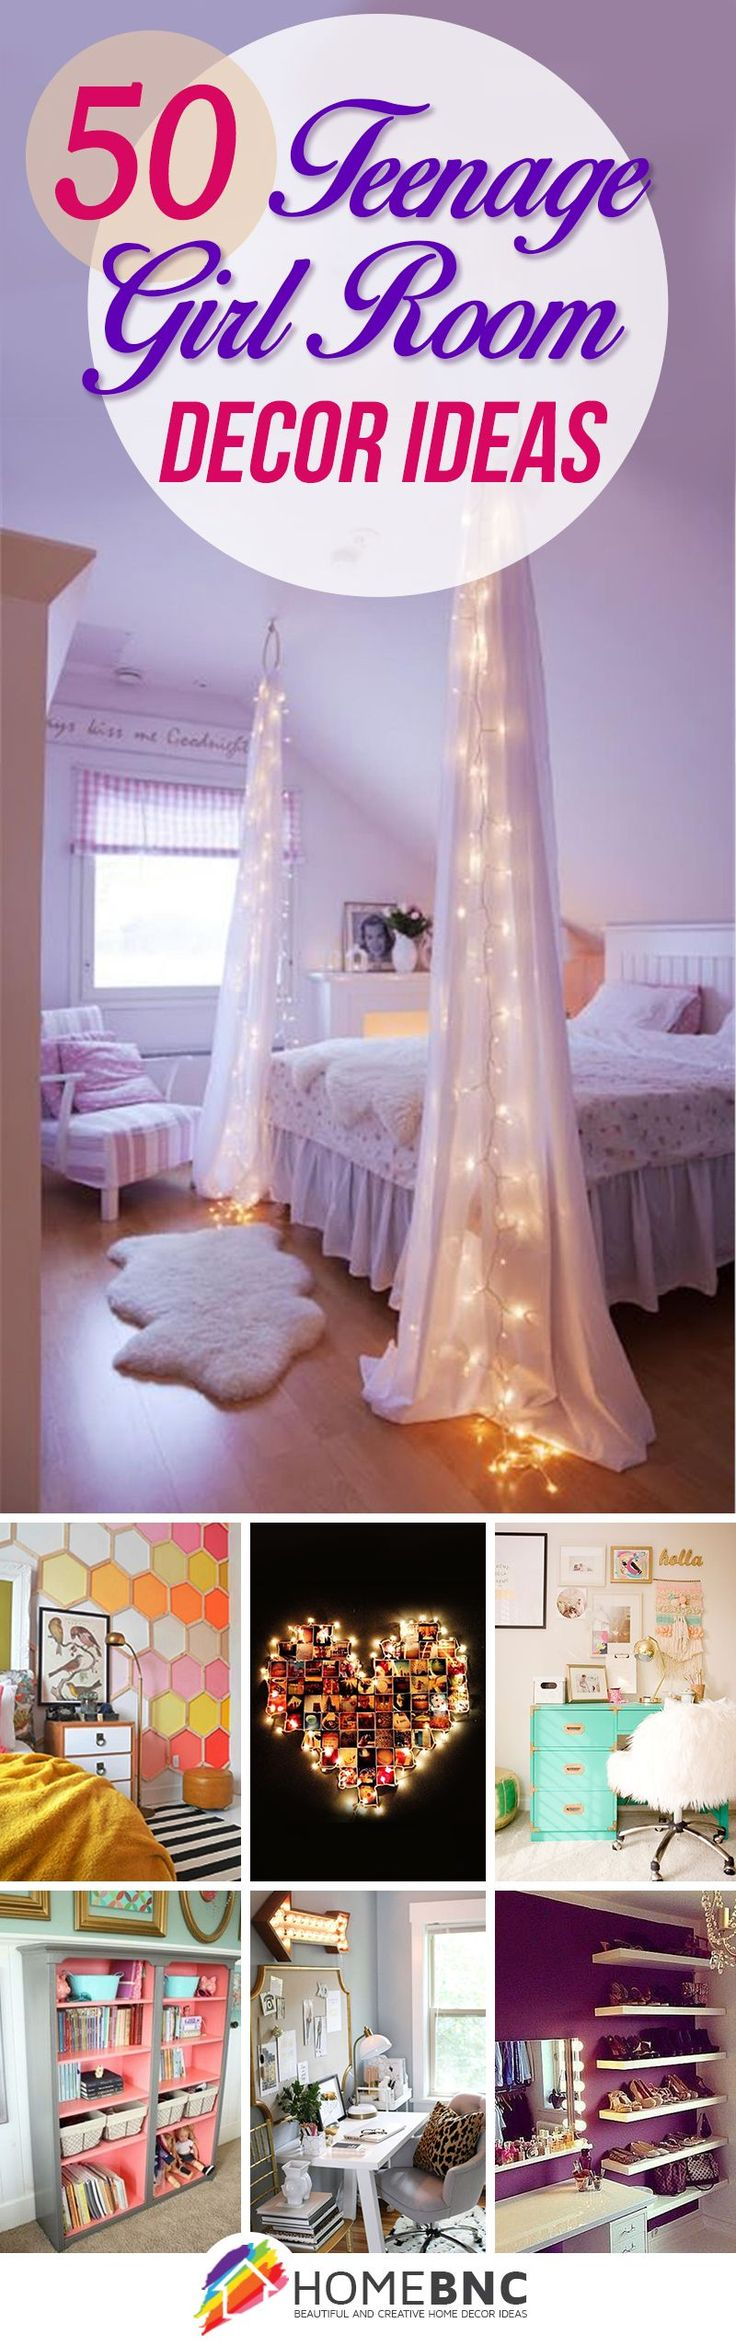 Bedroom Decorating Ideas For Teenage Girls best 25+ girl rooms ideas on pinterest | girl room, girl bedroom